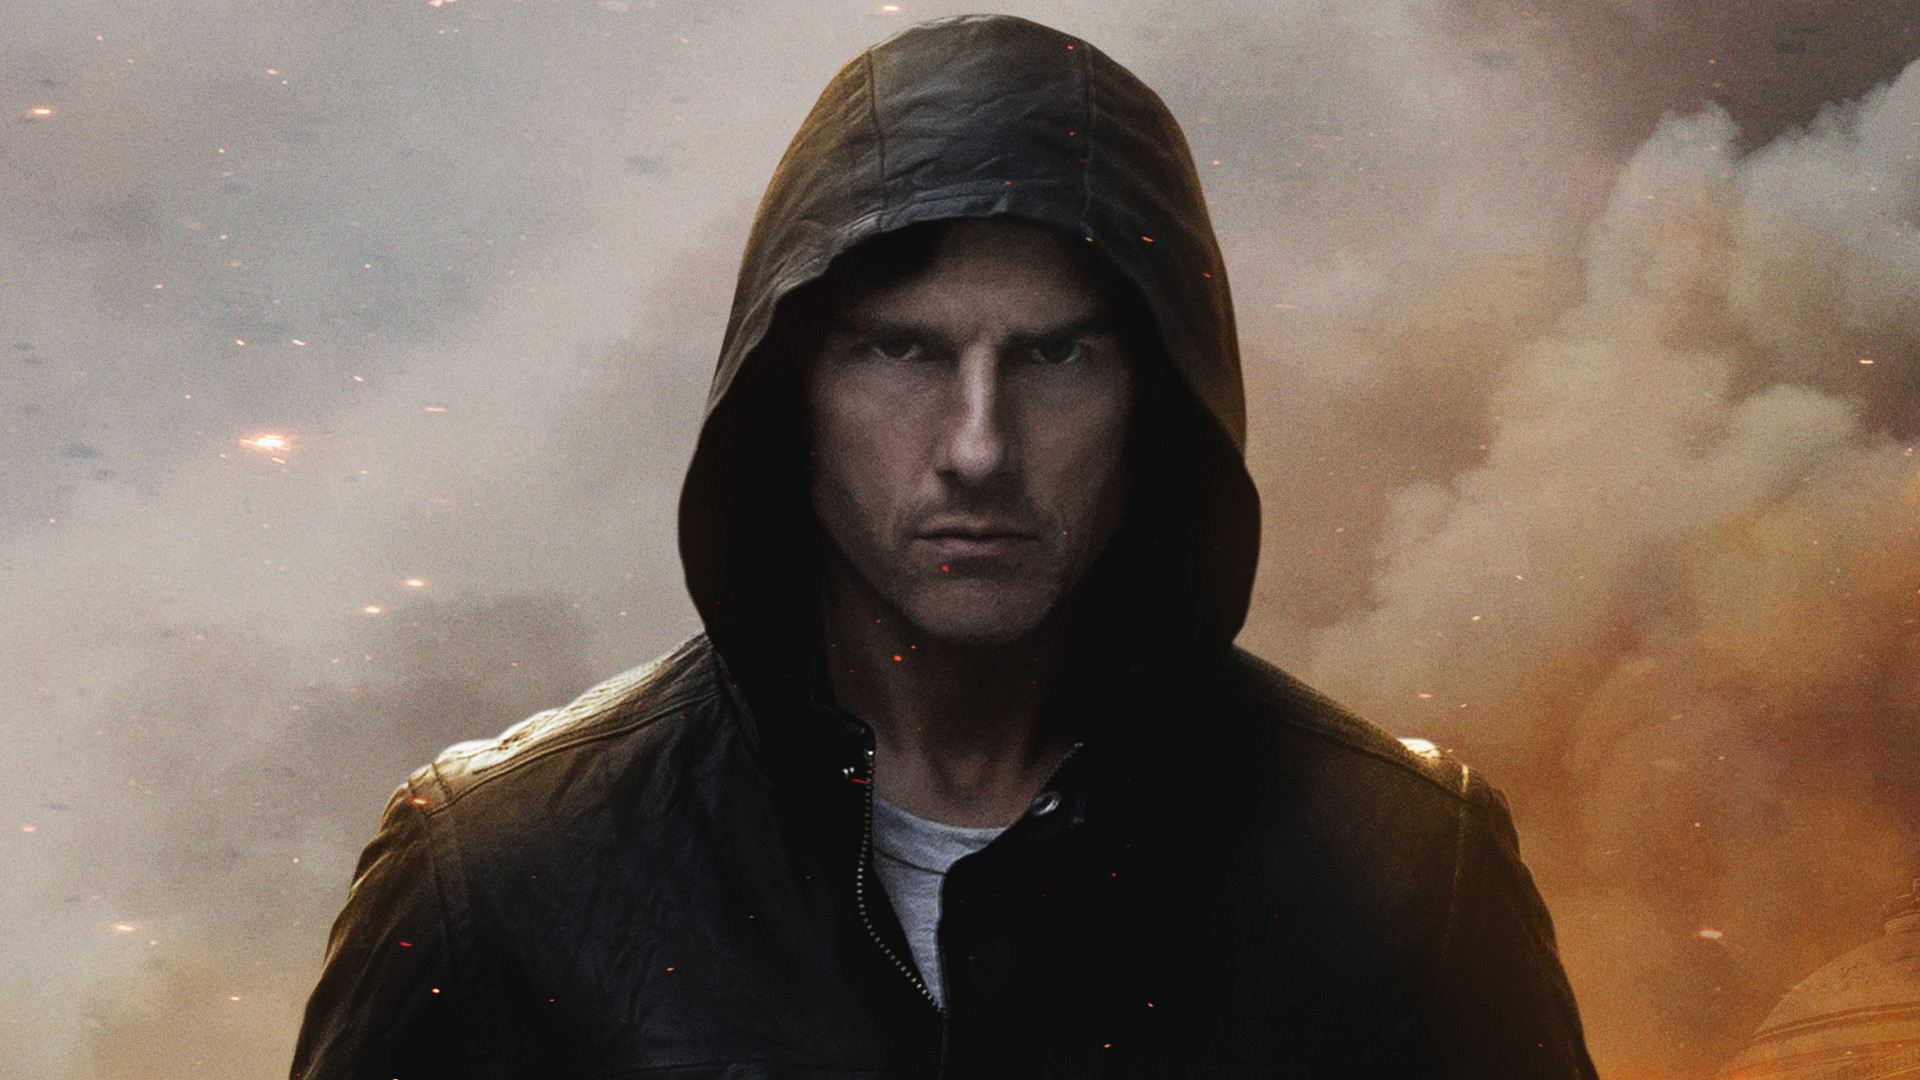 Mission Impossible Ghost Protocol Hd Wallpaper Background Image